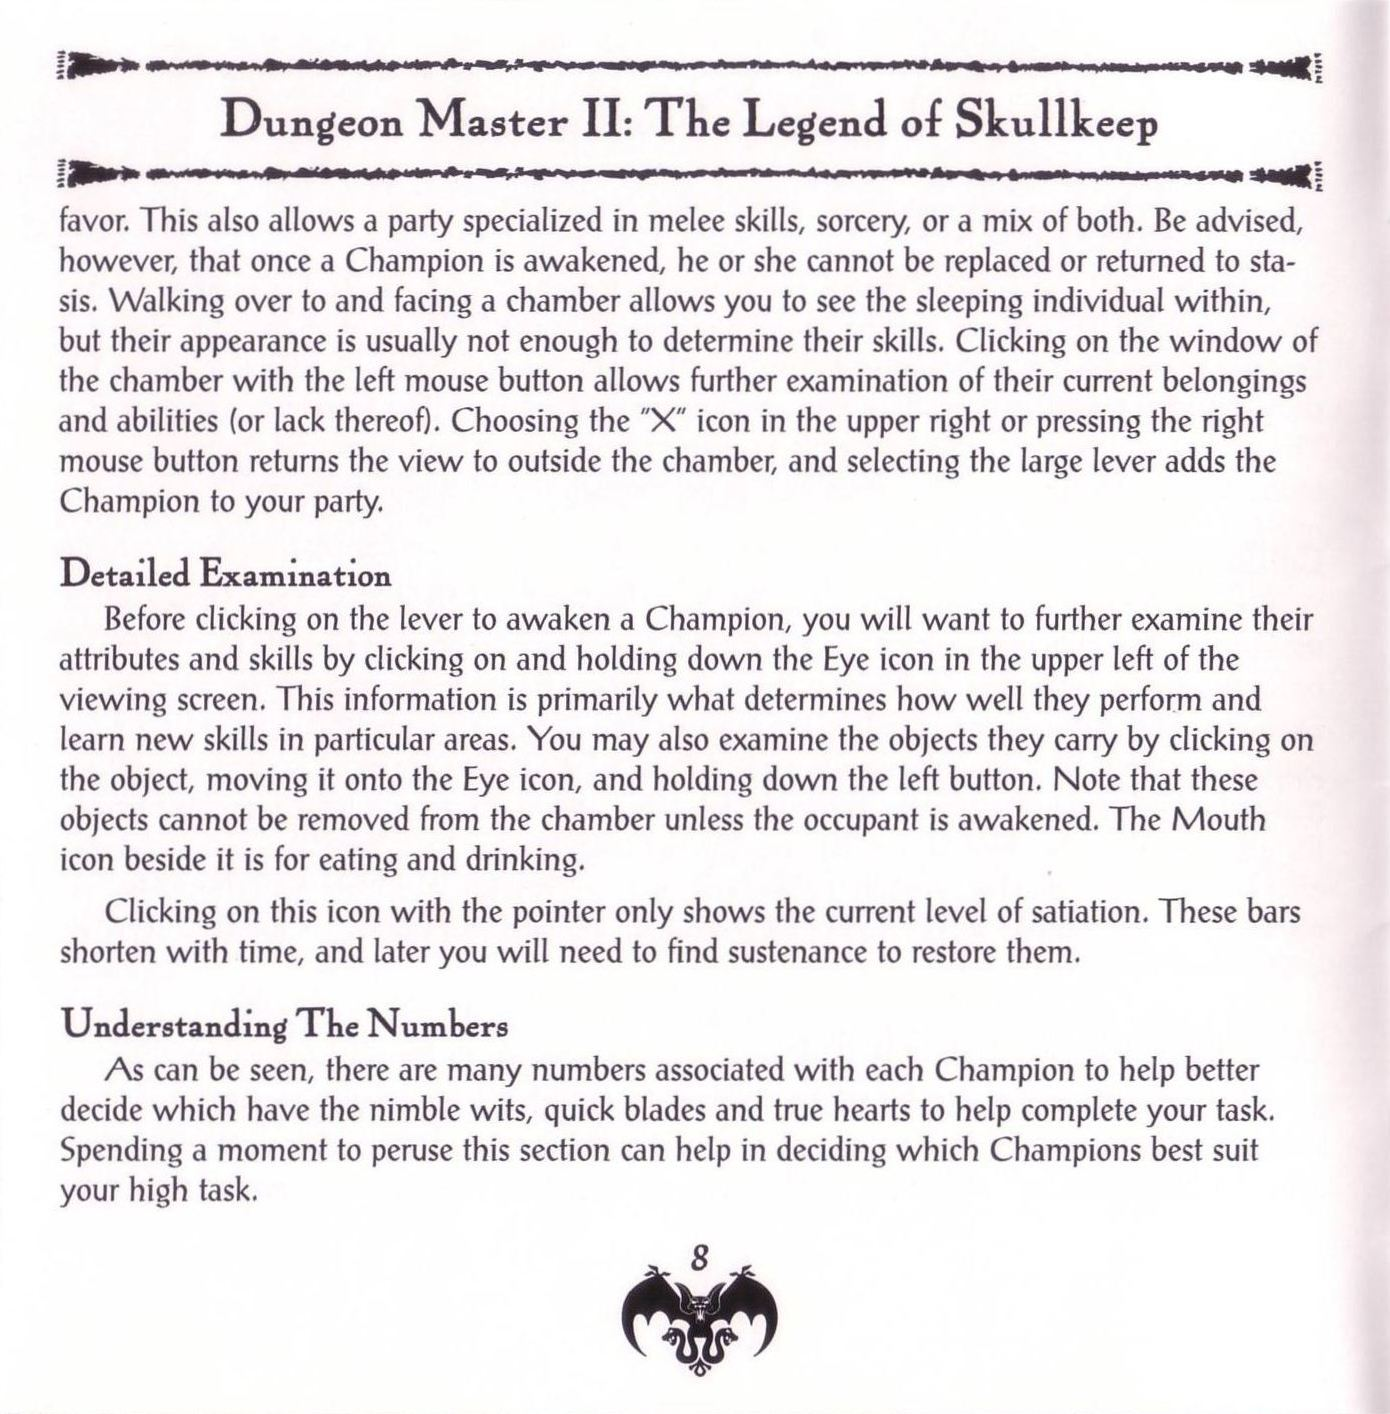 Game - Dungeon Master II - US - PC - Jewel Case - Booklet - Page 010 - Scan